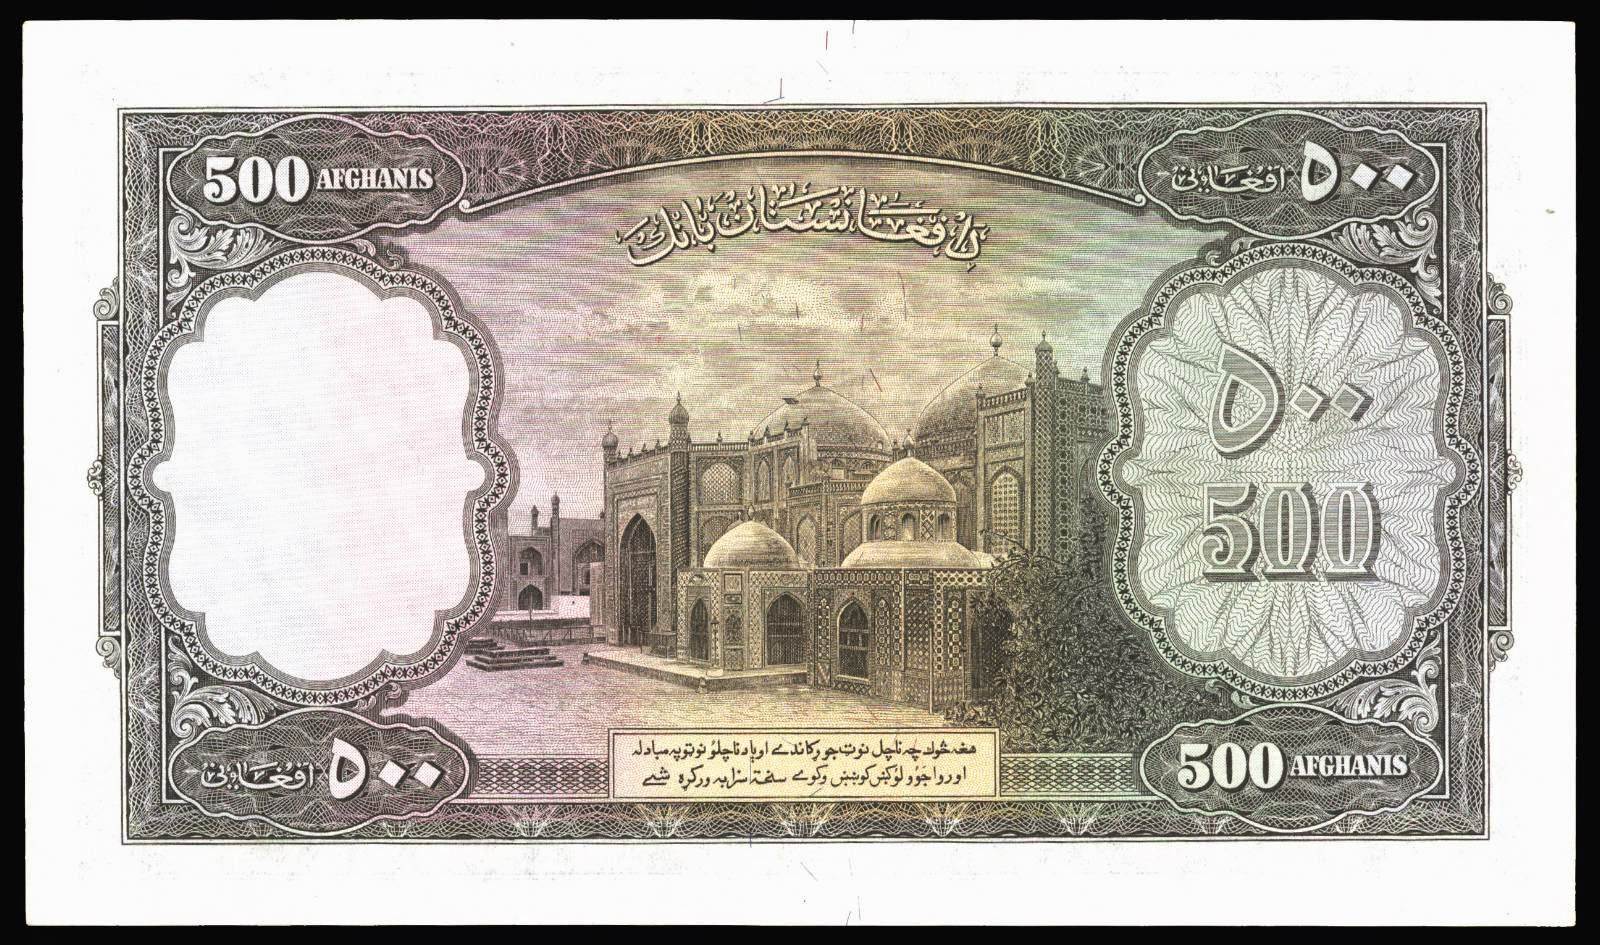 500 Afghanis banknote 1939 Blue Mosque in Mazar-i-Sharif